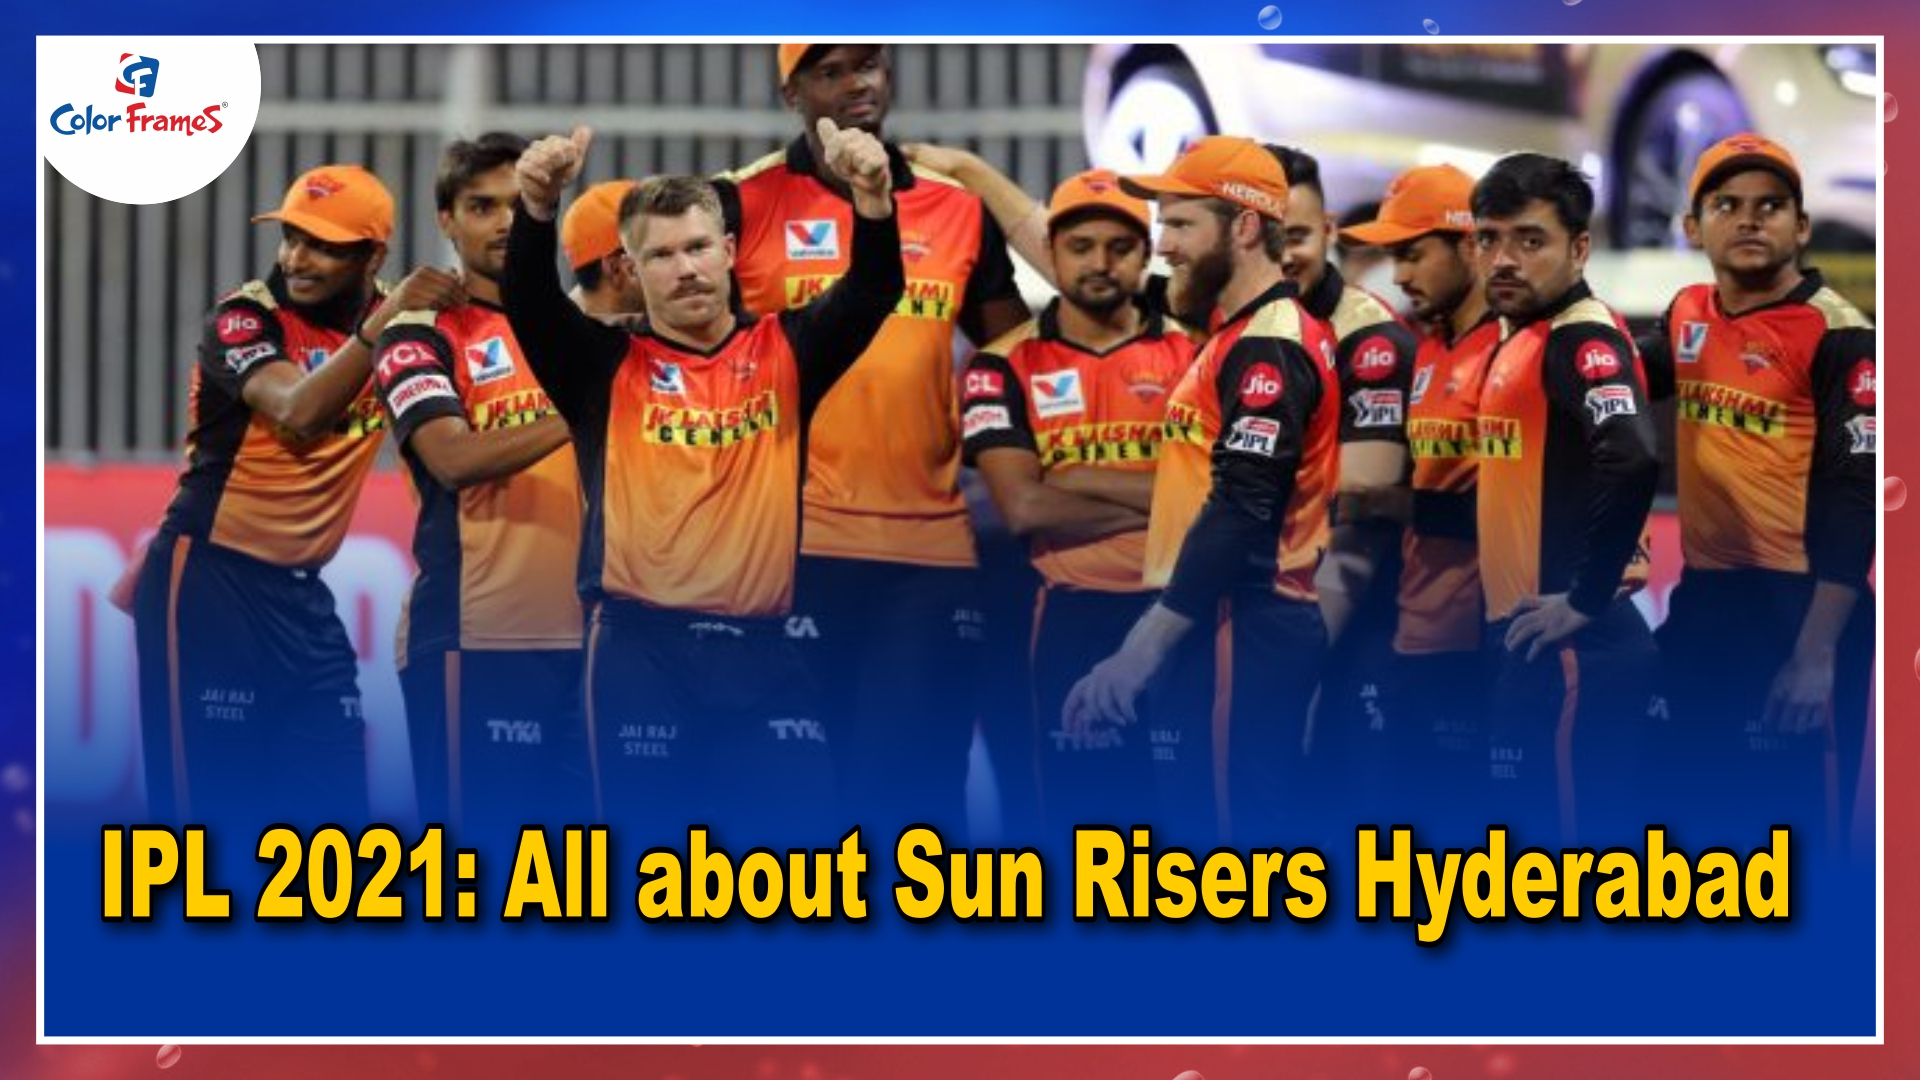 IPL 2021: All about Sun Risers Hyderabad